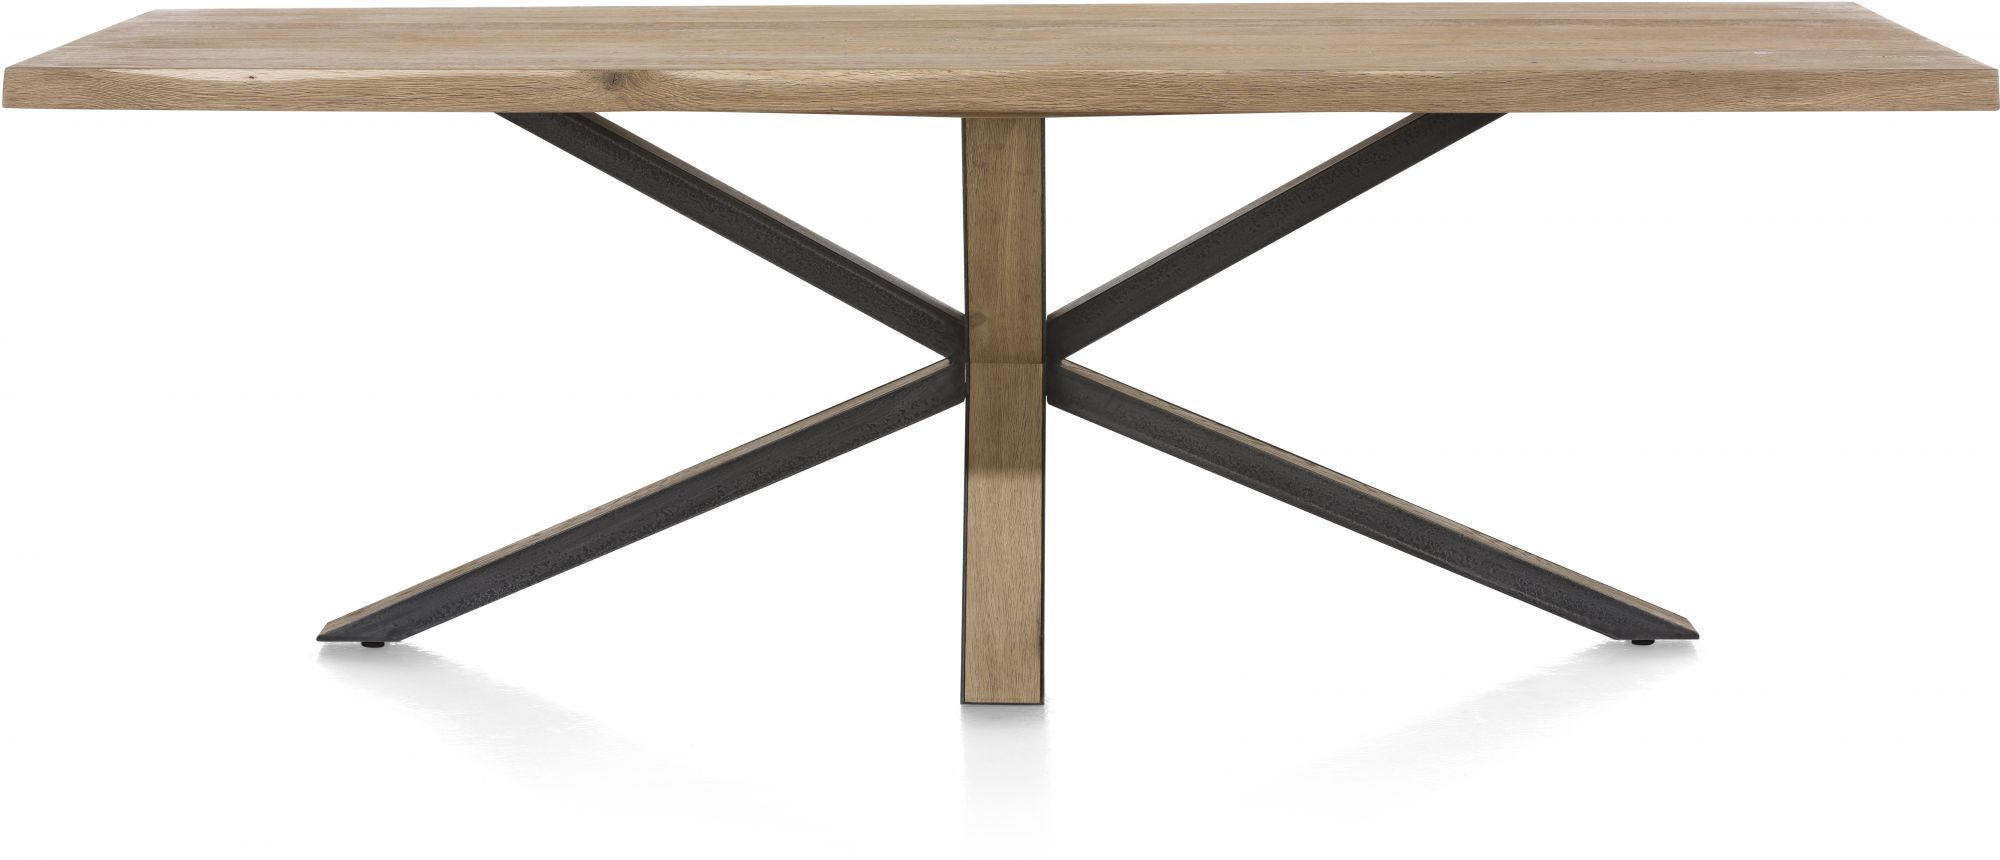 Coffee Table And Dining Table In One Habufa Ovada Dining Table 4 Sizes Fixed Dining Tables